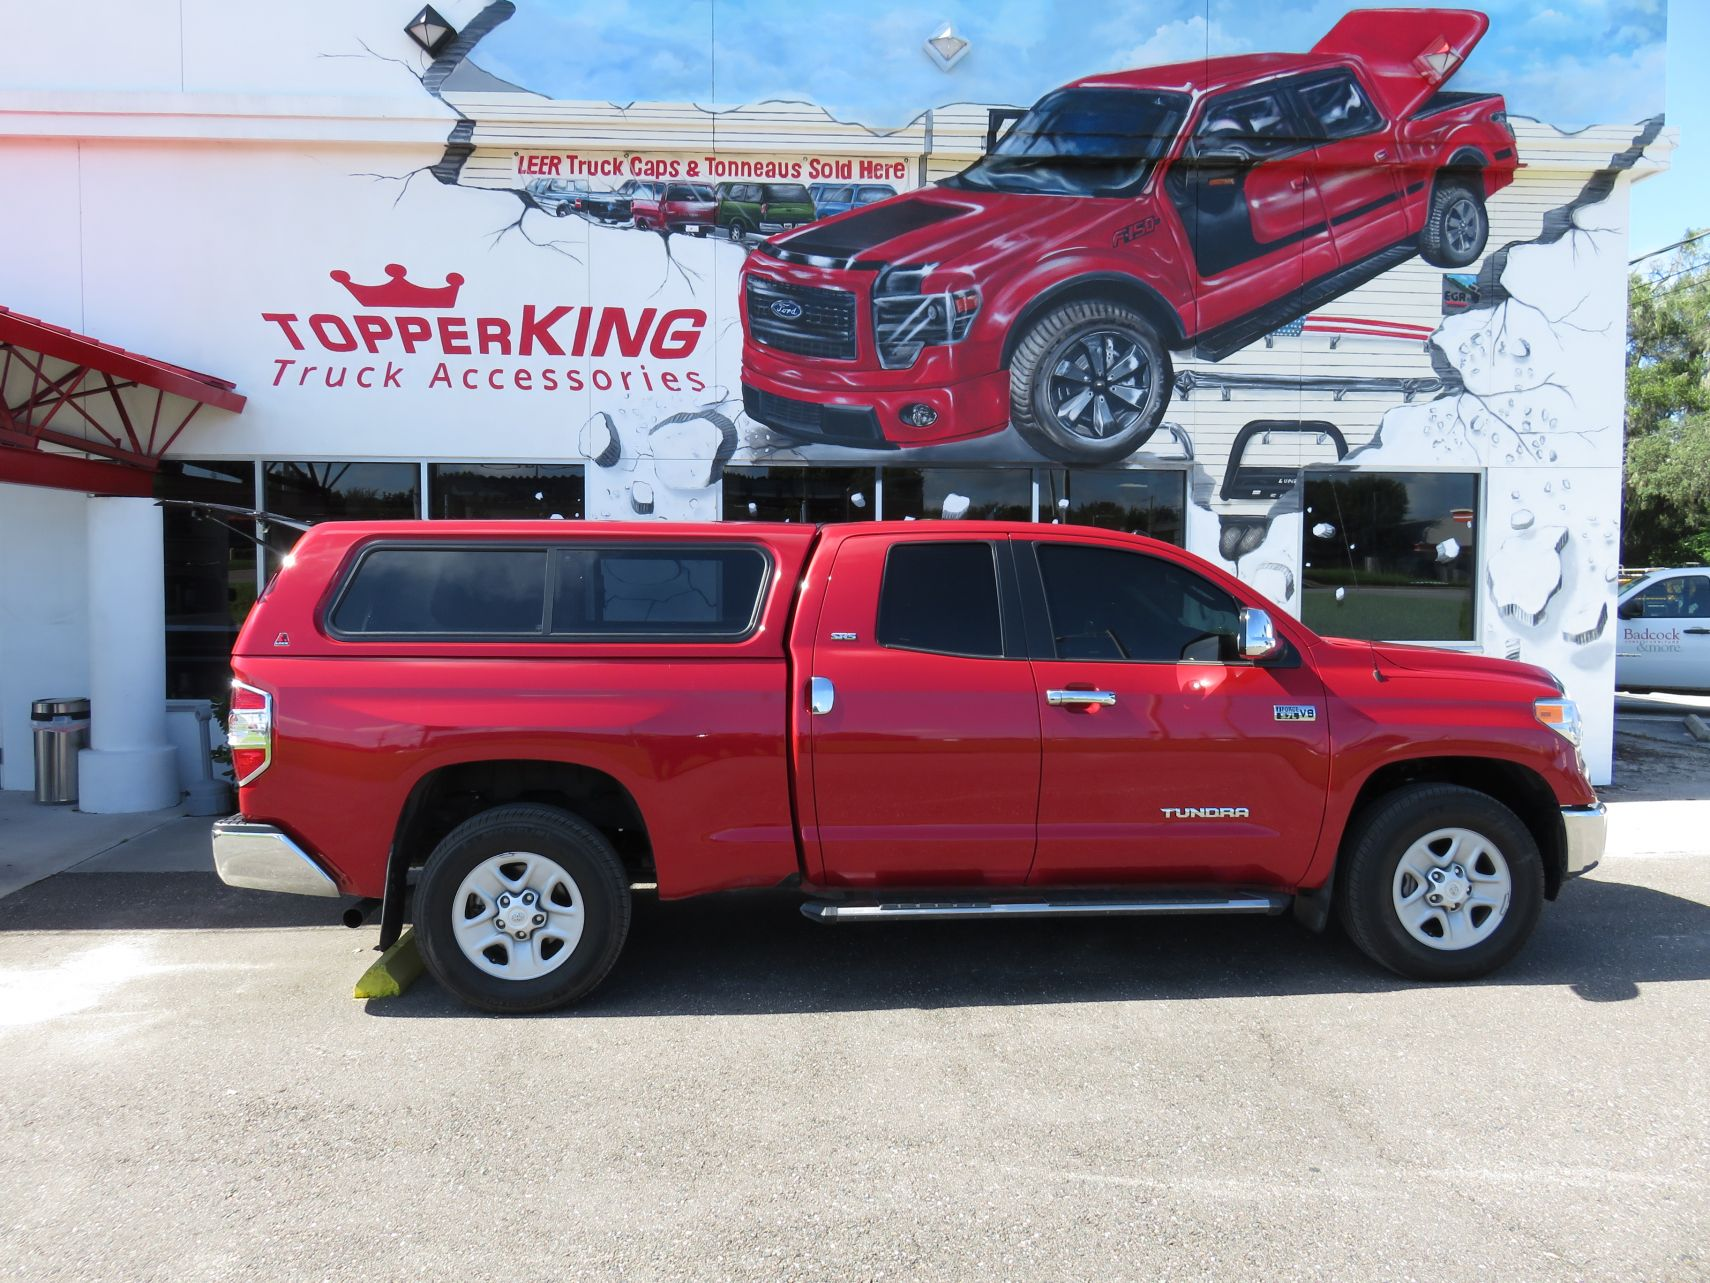 2016 Toyota Tundra with Leer 100XR, Nerf Bars, Chrome, Tint, Custom Hitch by TopperKING in Brandon, FL 813-689-2449 or Clearwater, FL 727-530-9066. Call Today!